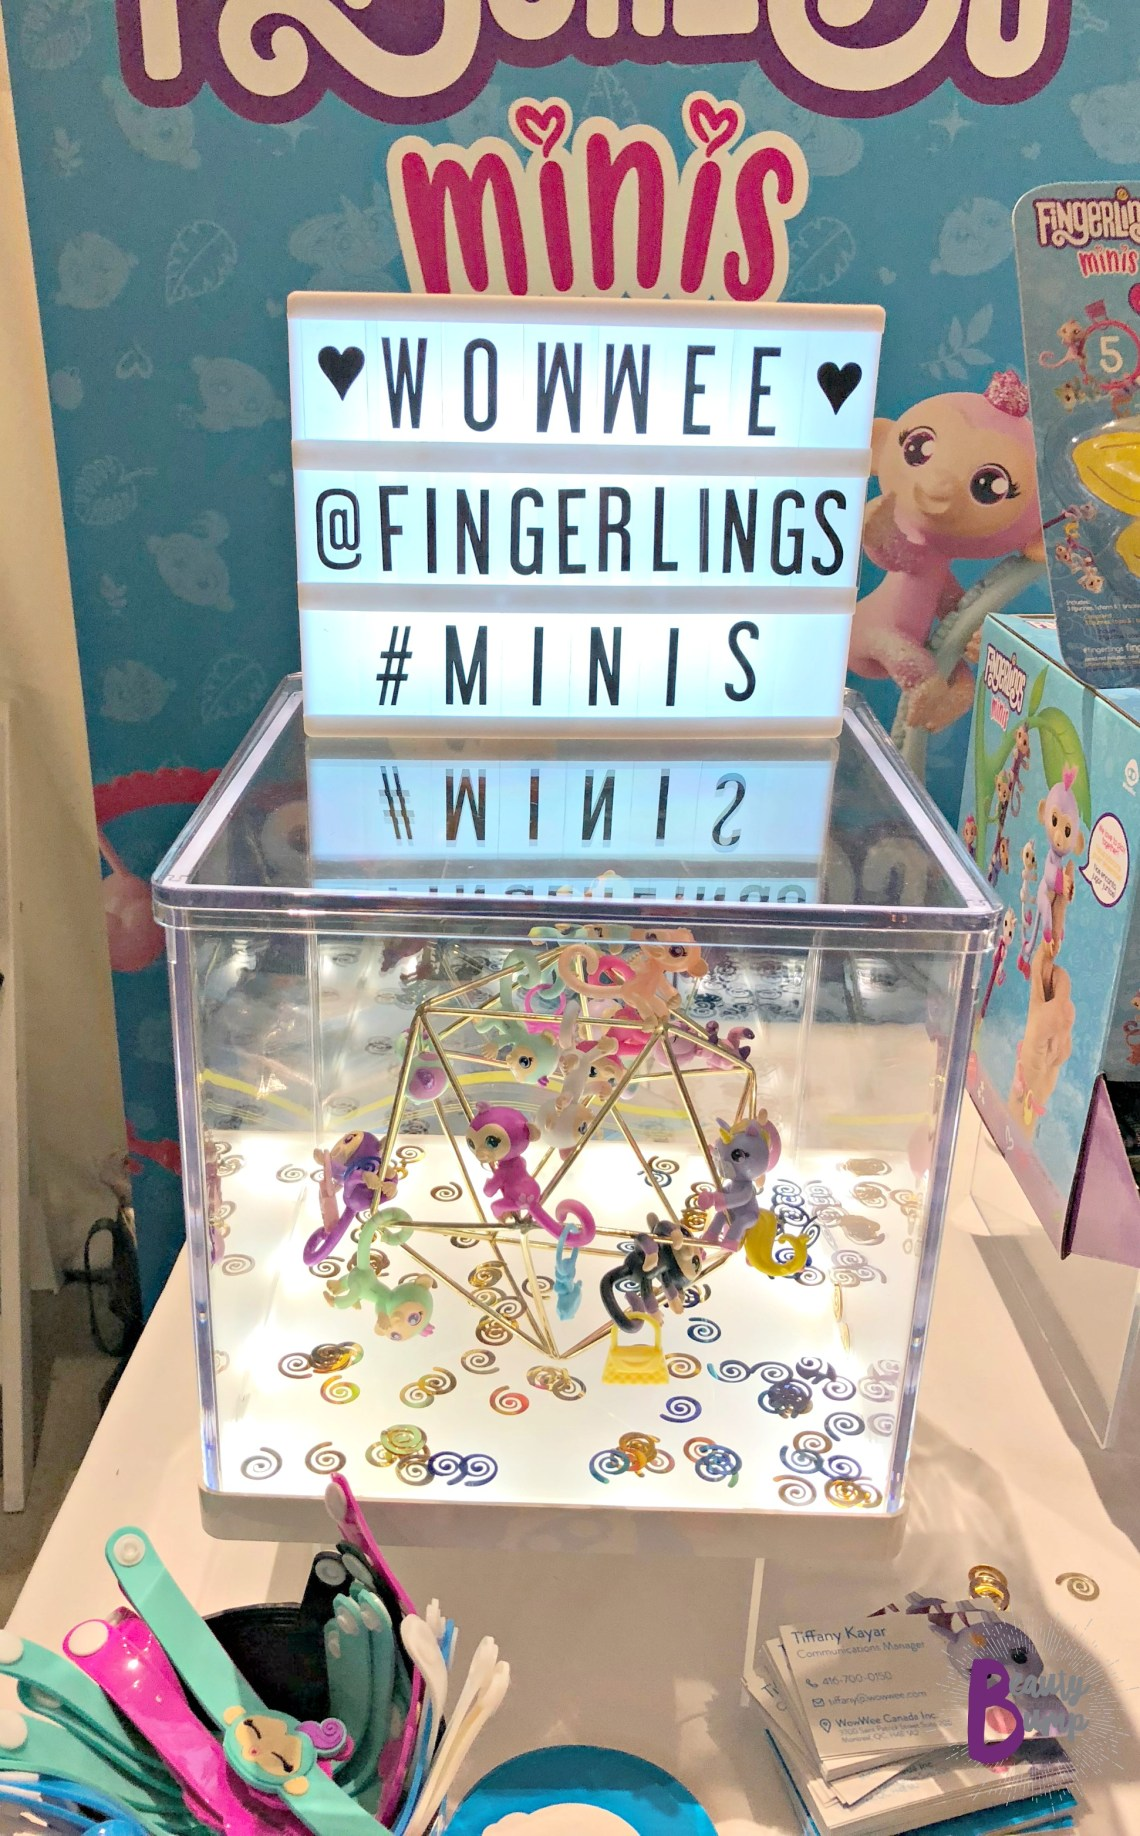 Wowwee Fingerlings Minis